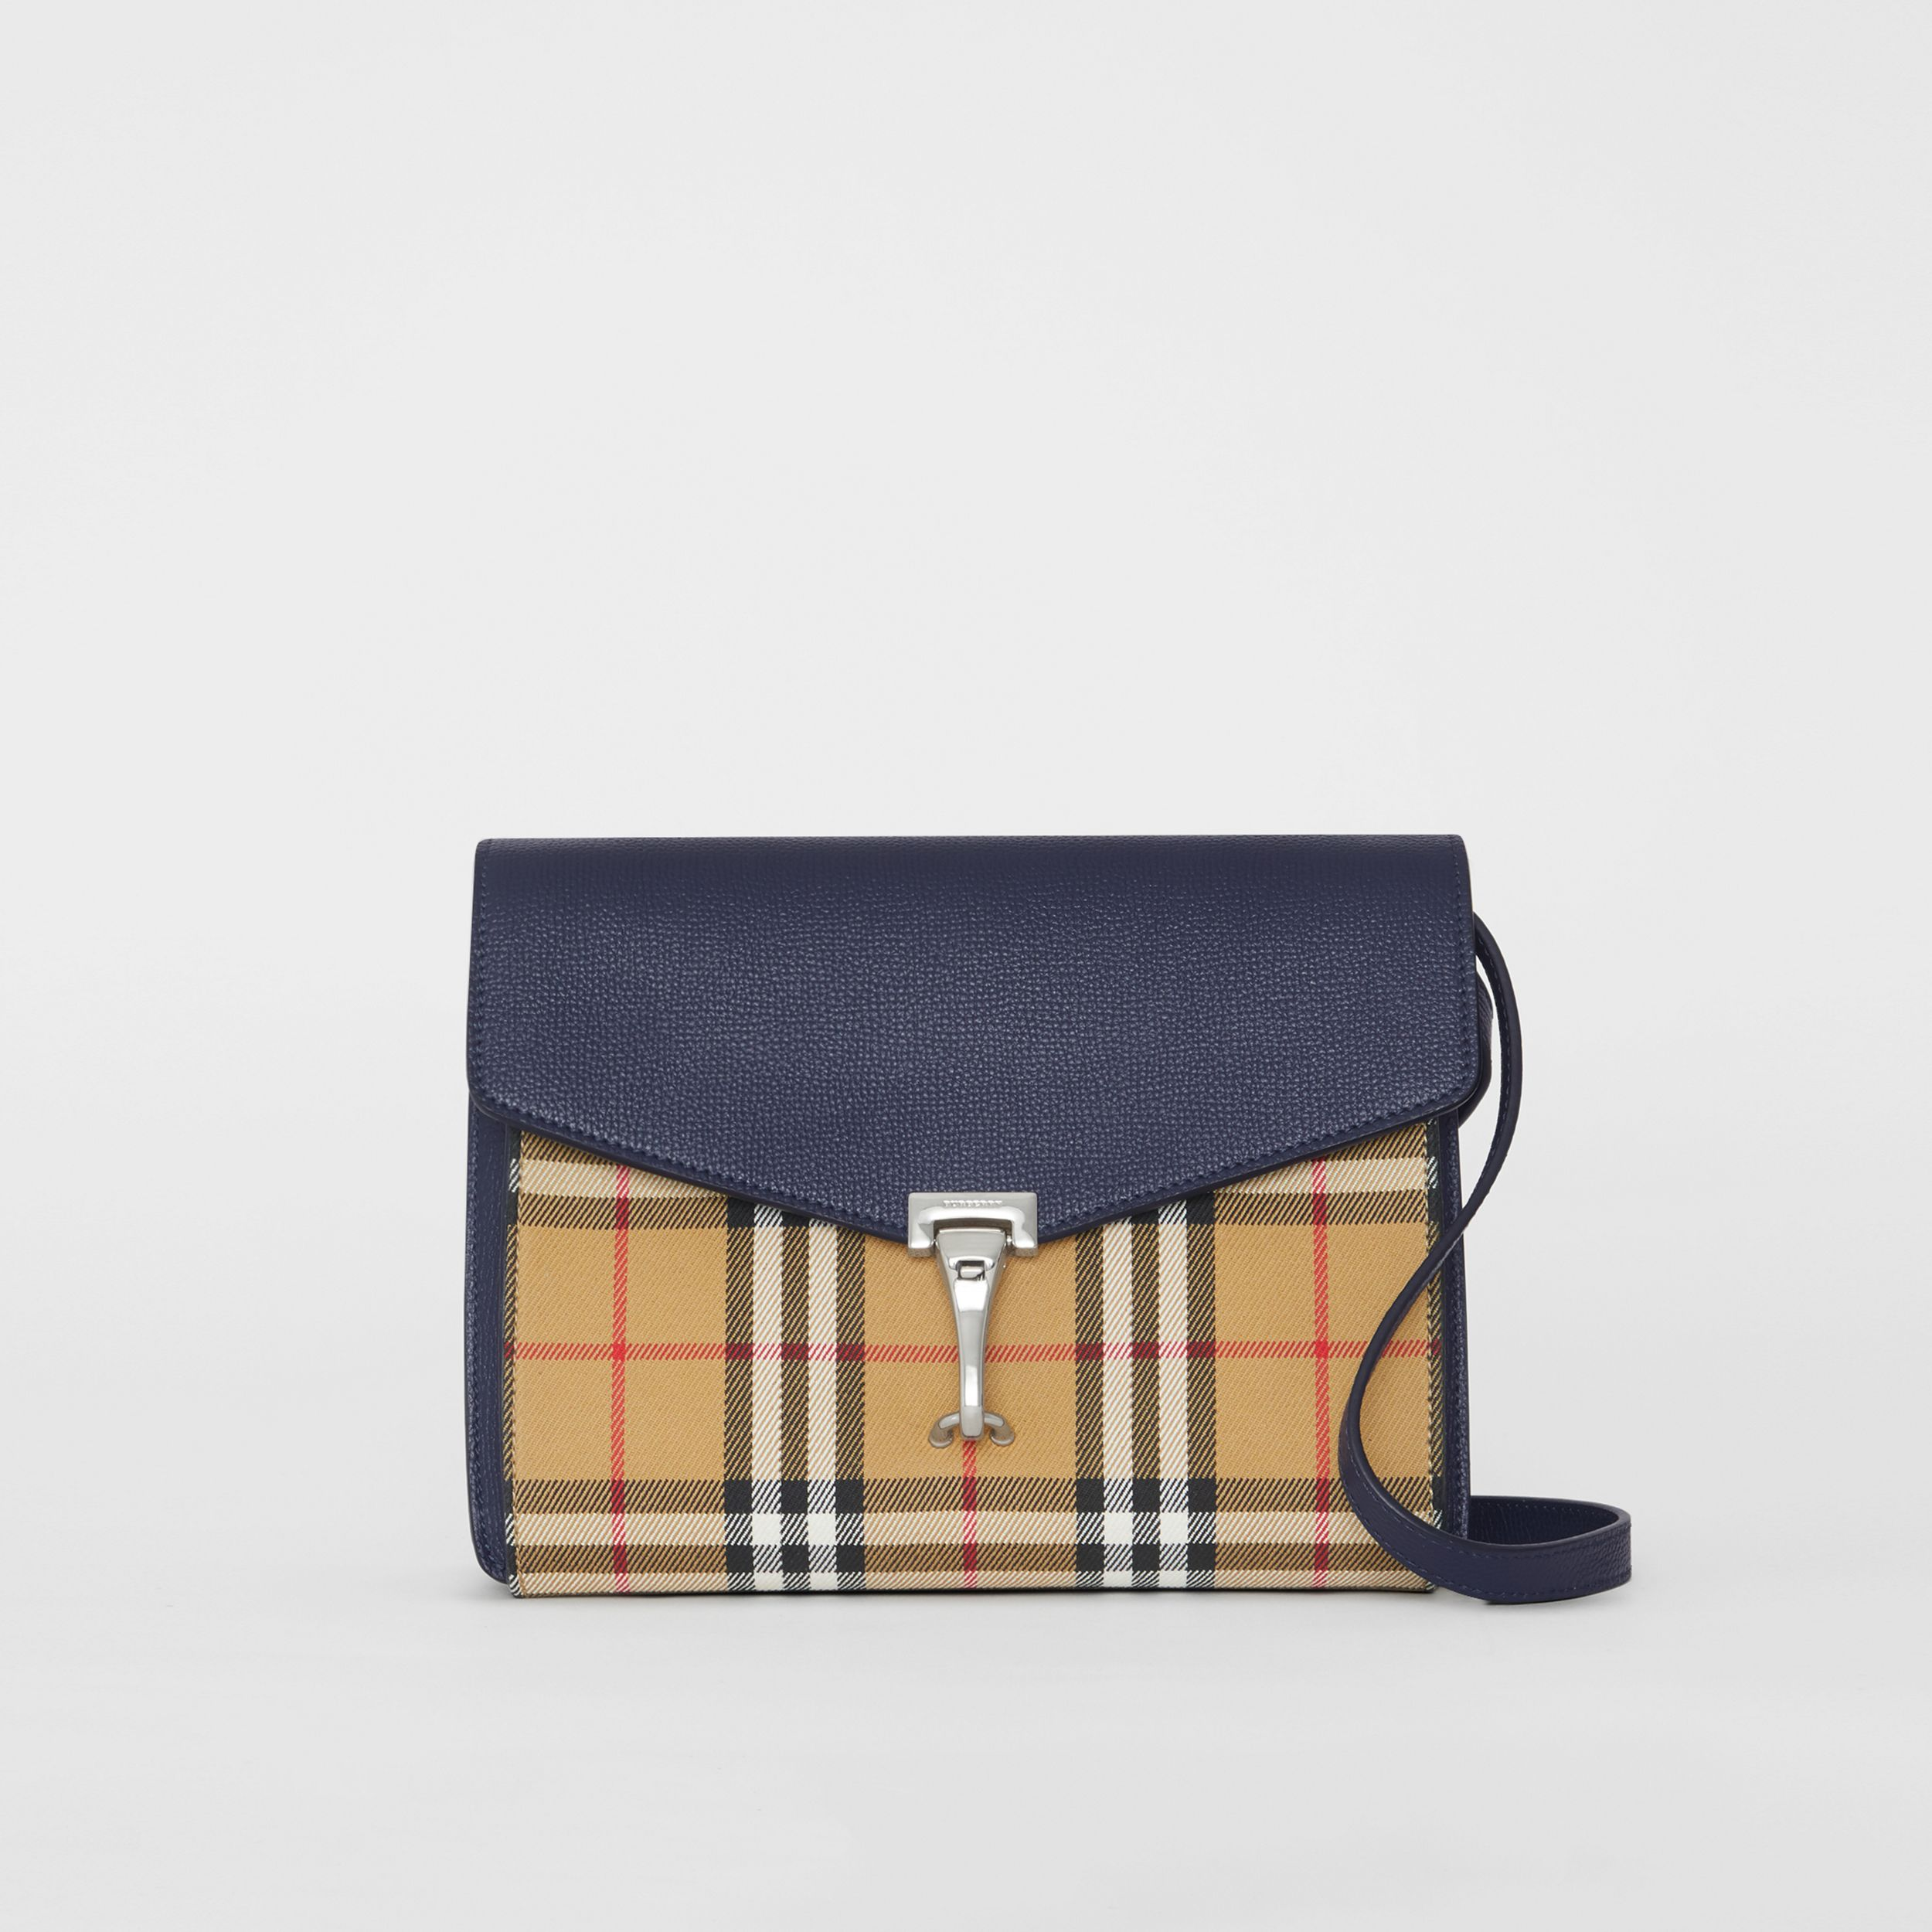 Small Vintage Check and Leather Crossbody Bag in Regency Blue | Burberry - 1